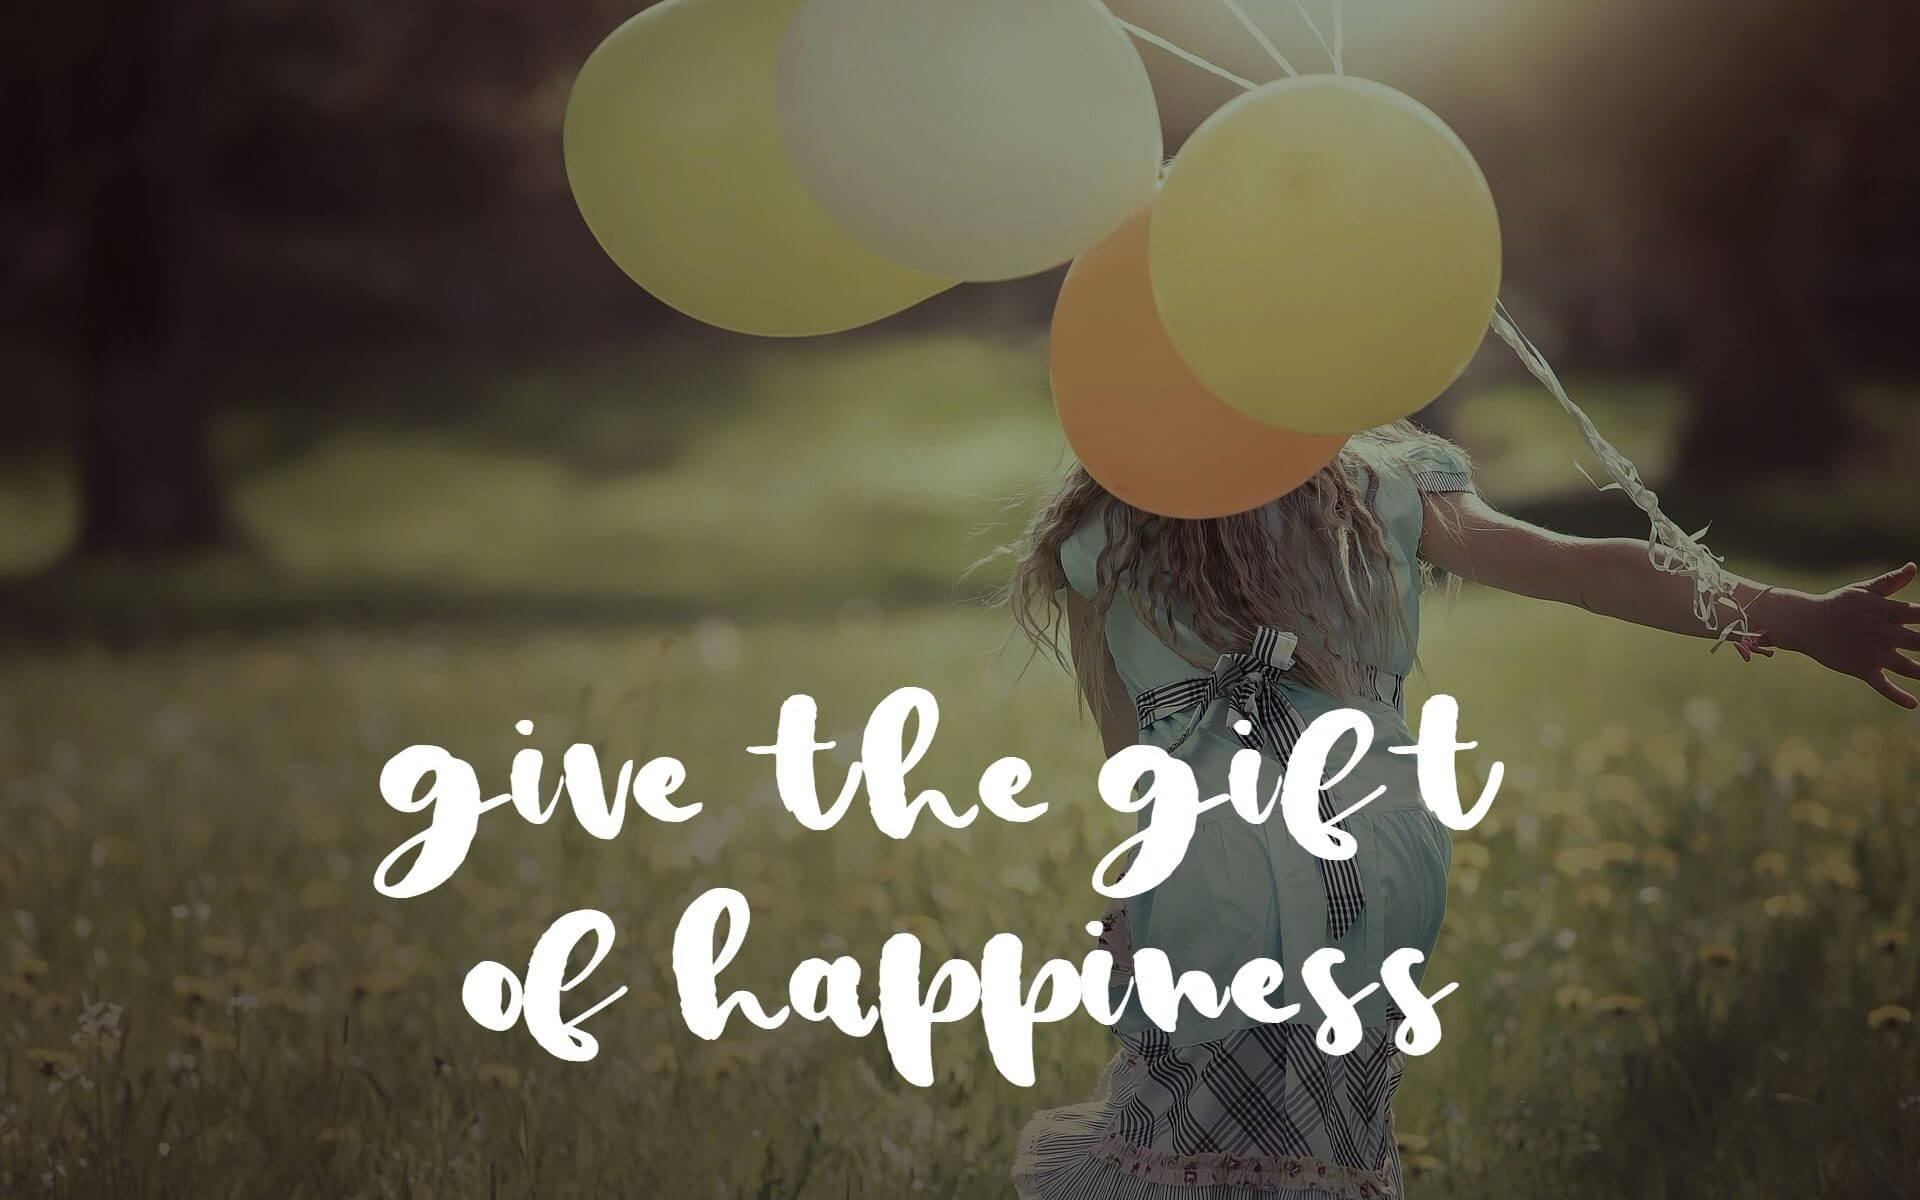 Give the gift of happiness